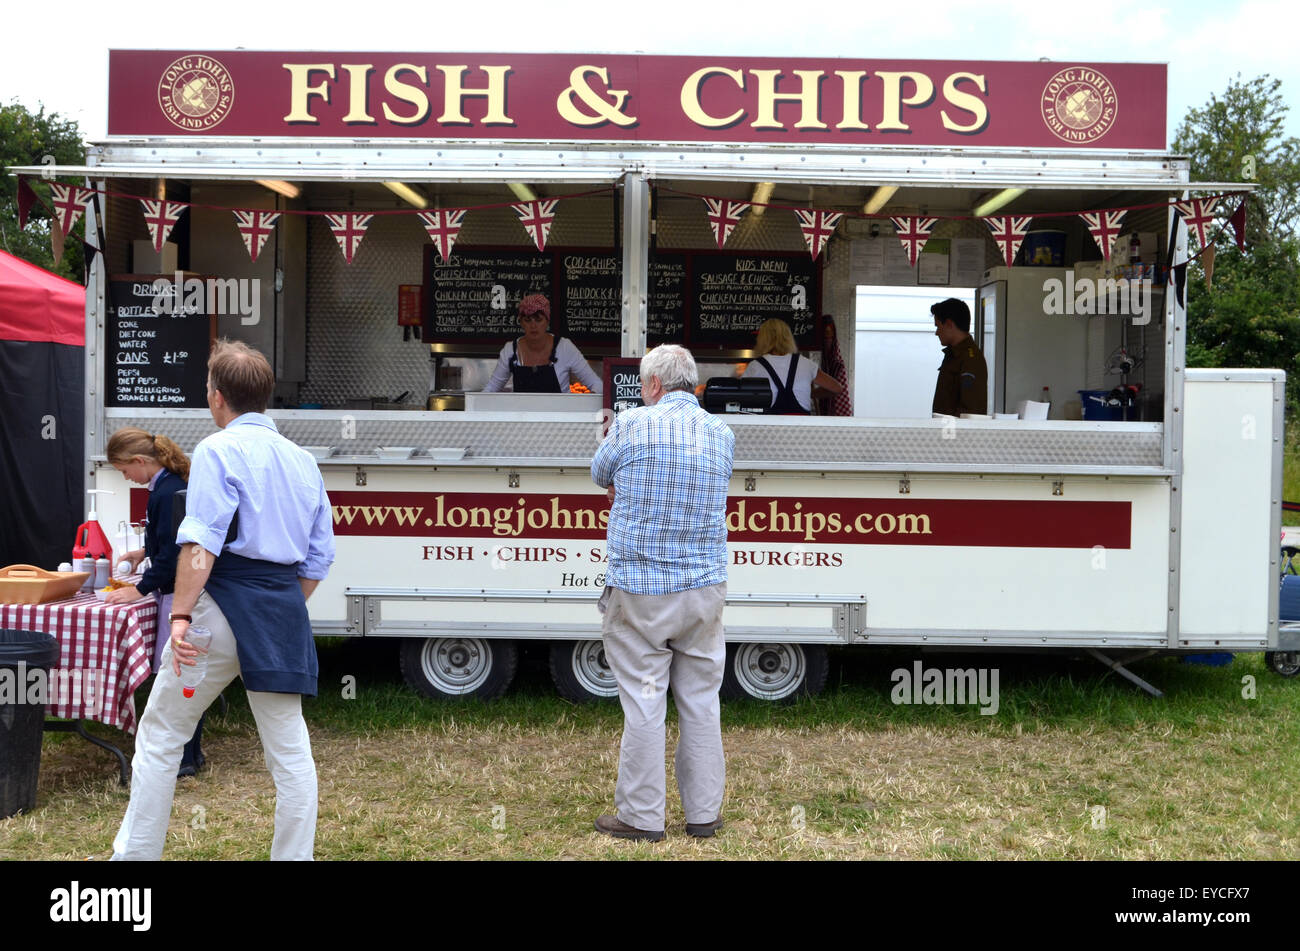 Fish & chips van at Chalke History Festival 2015 - Stock Image